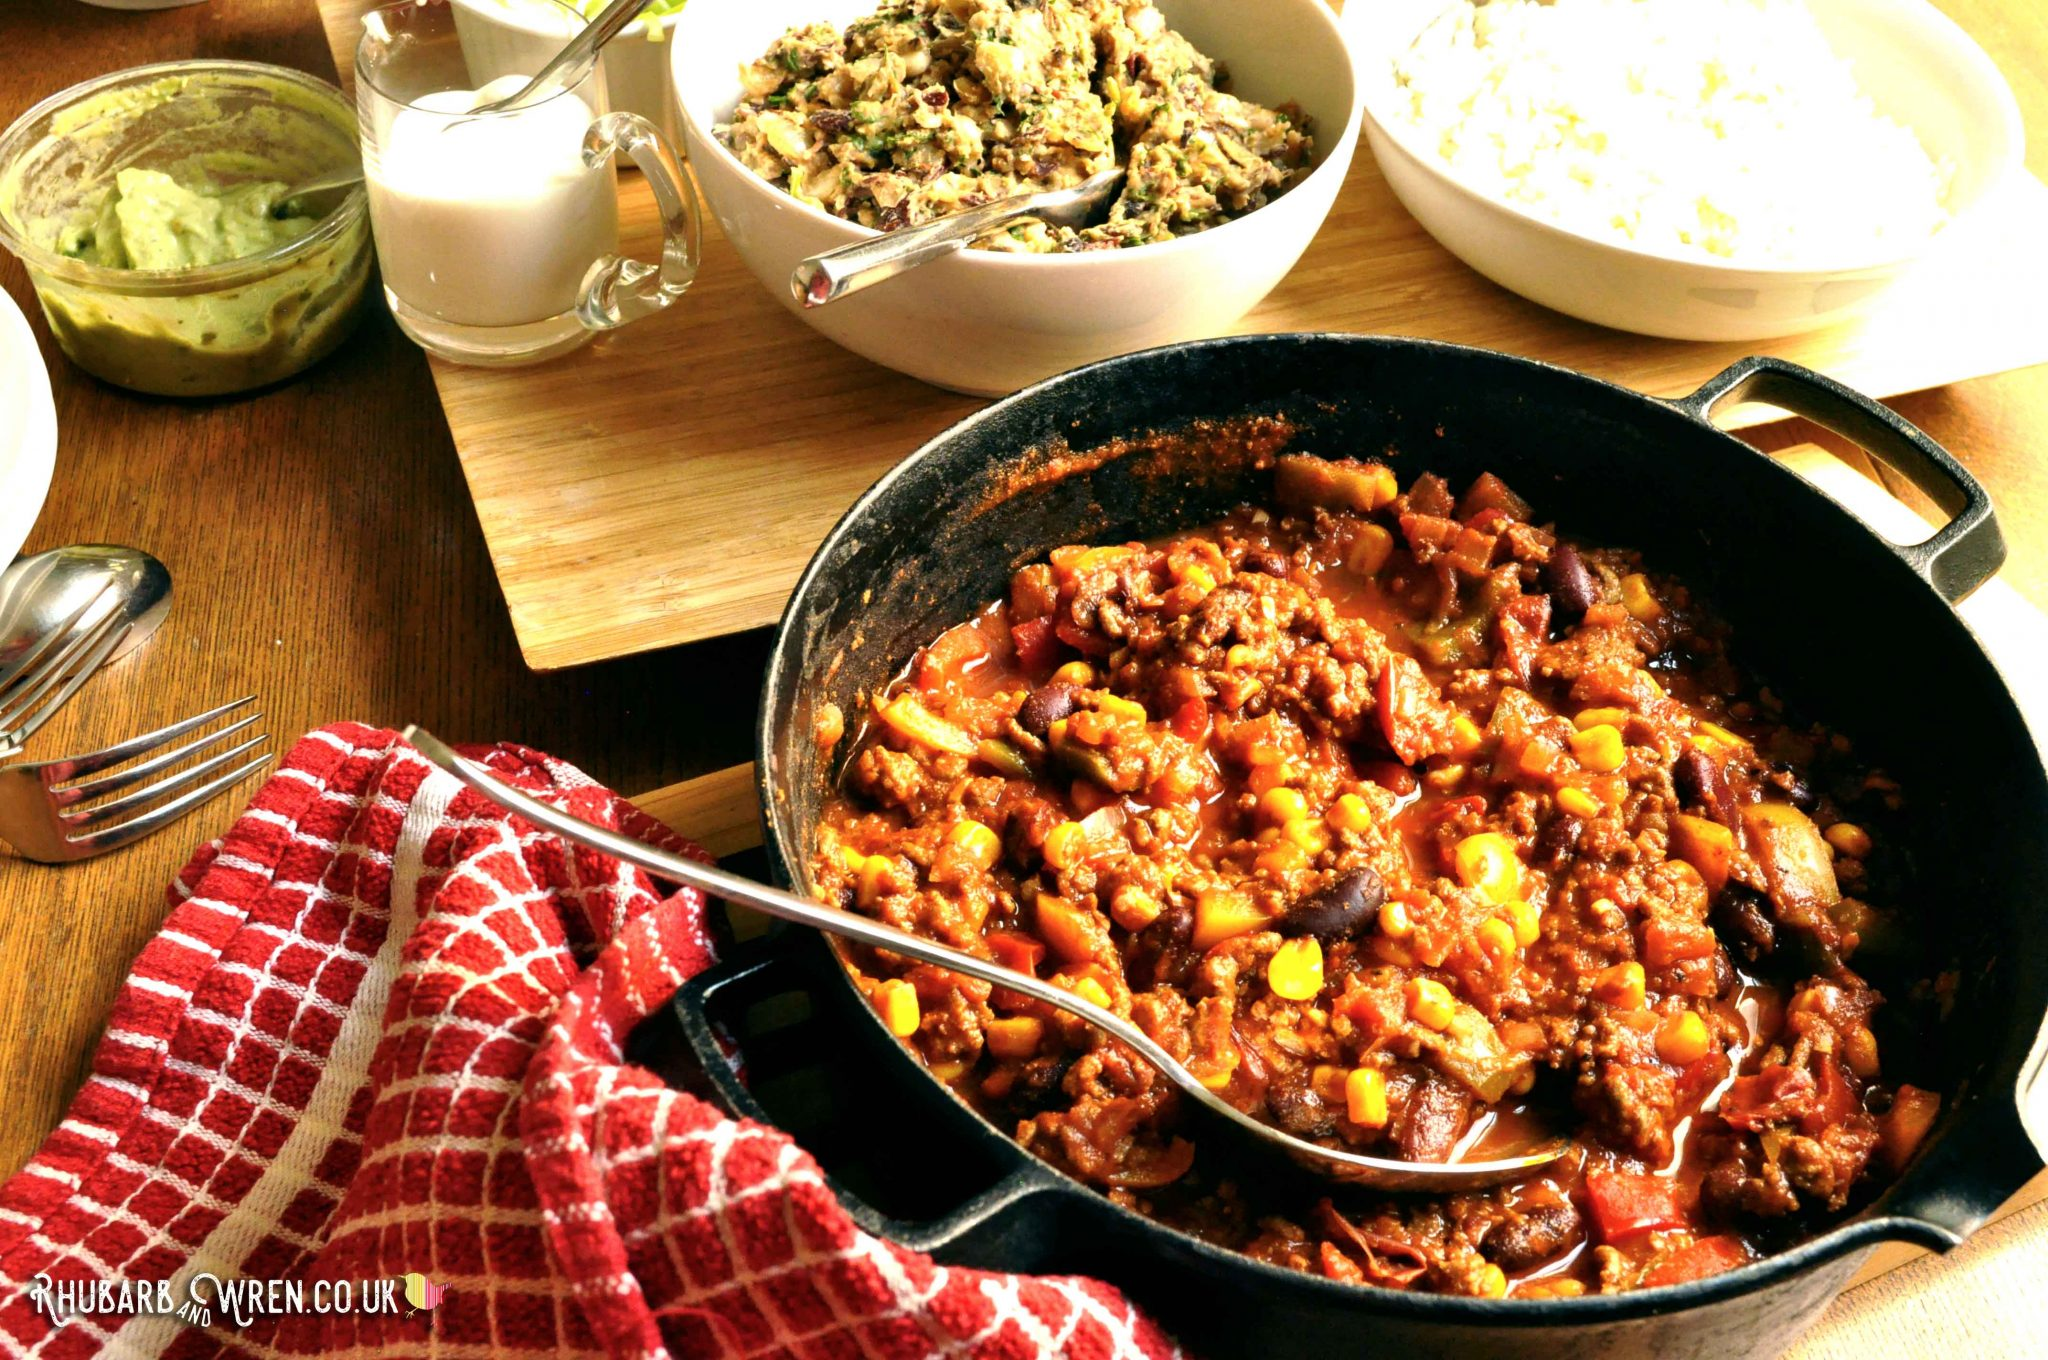 beef or vegan chilli recipe